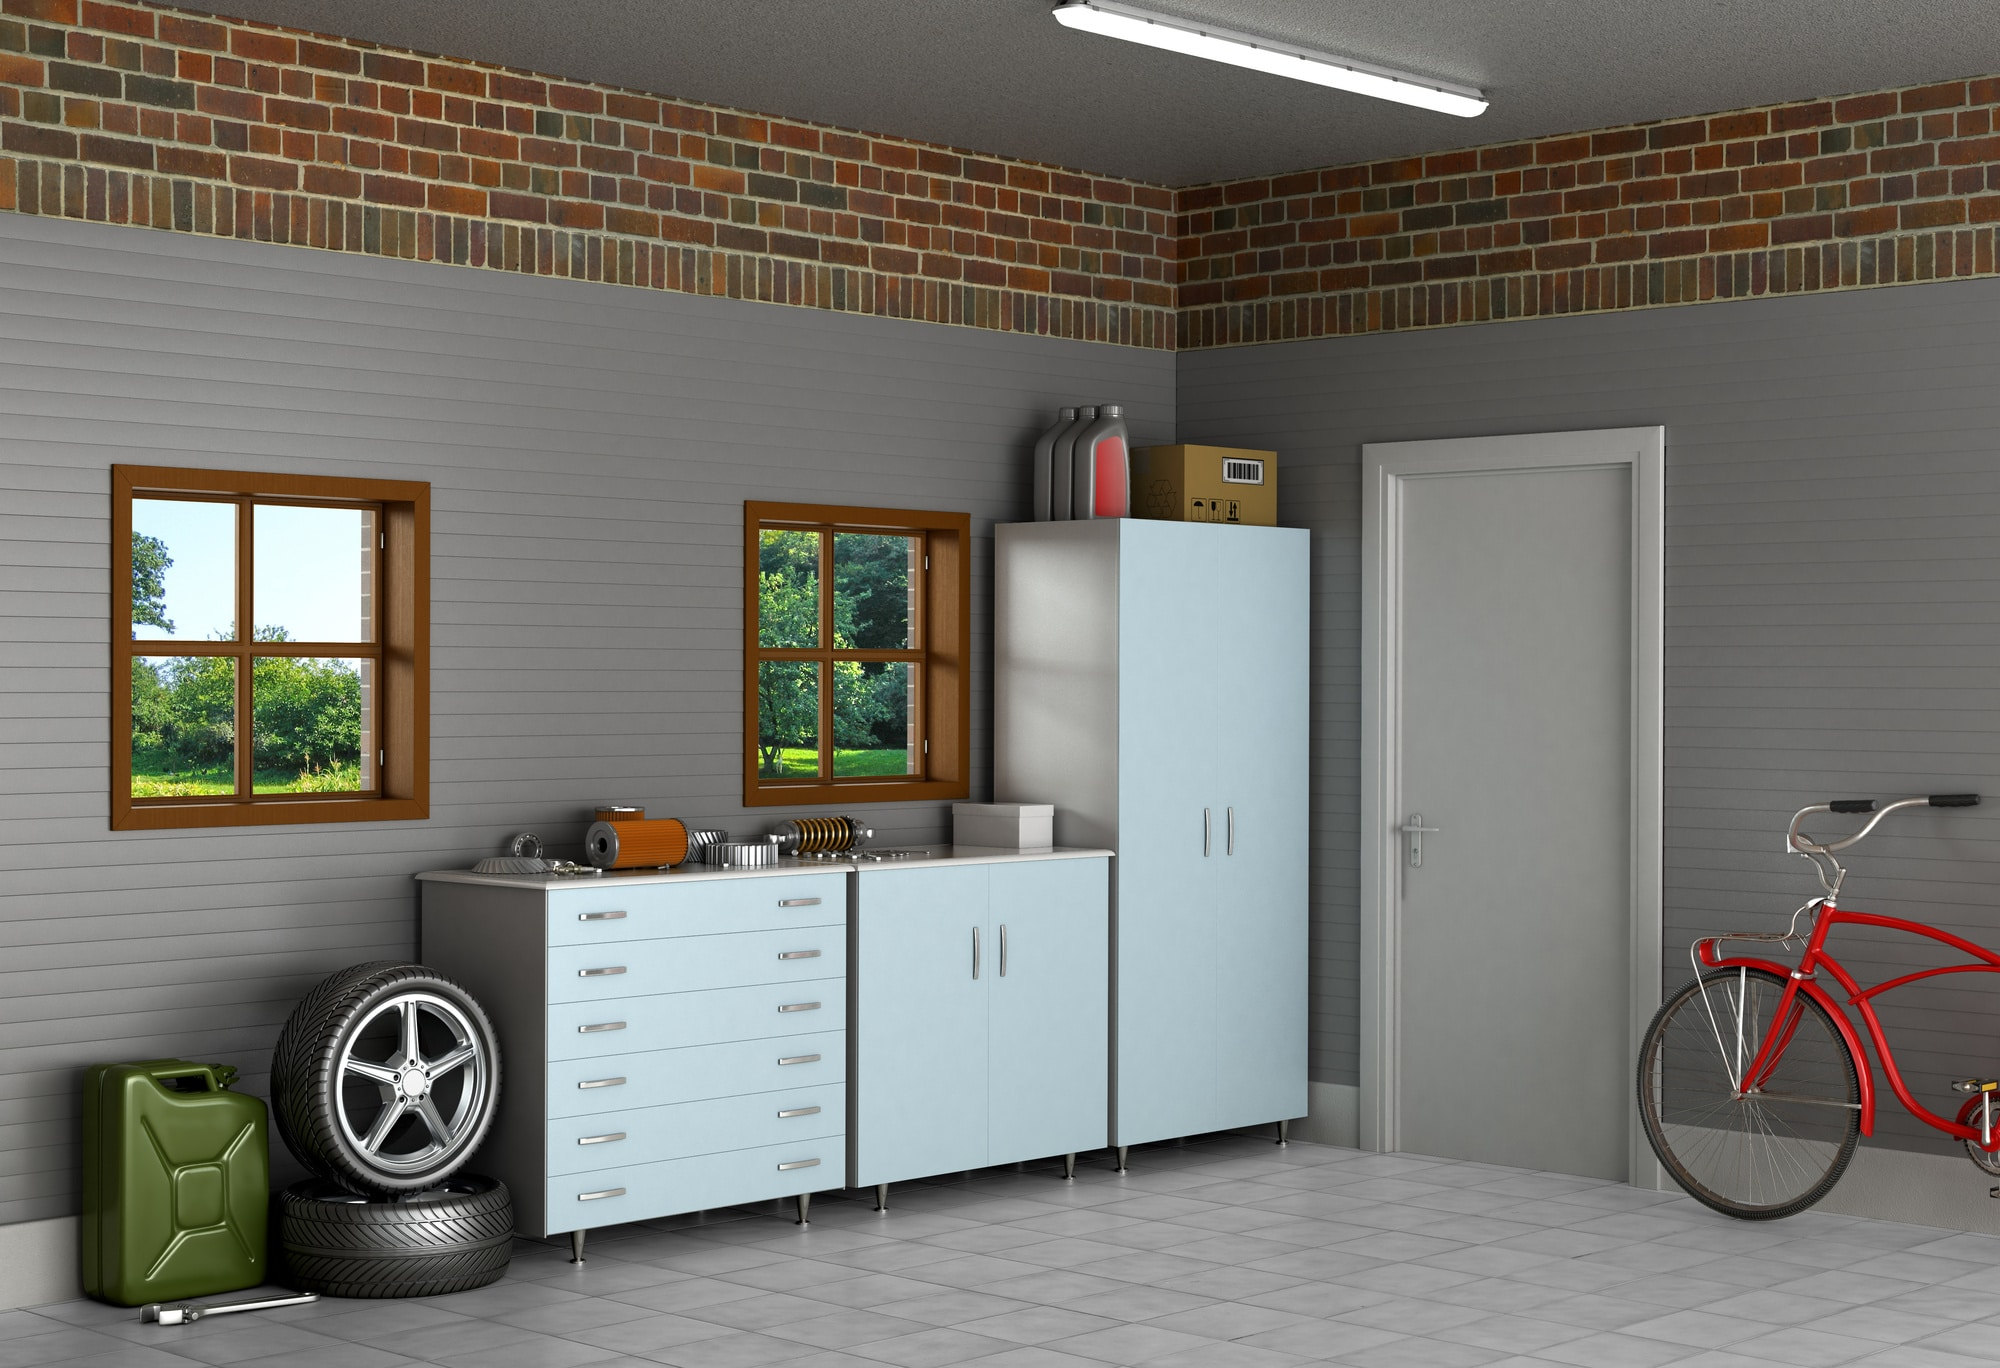 A New Garage: 4 Great Ideas for Garage Renovations